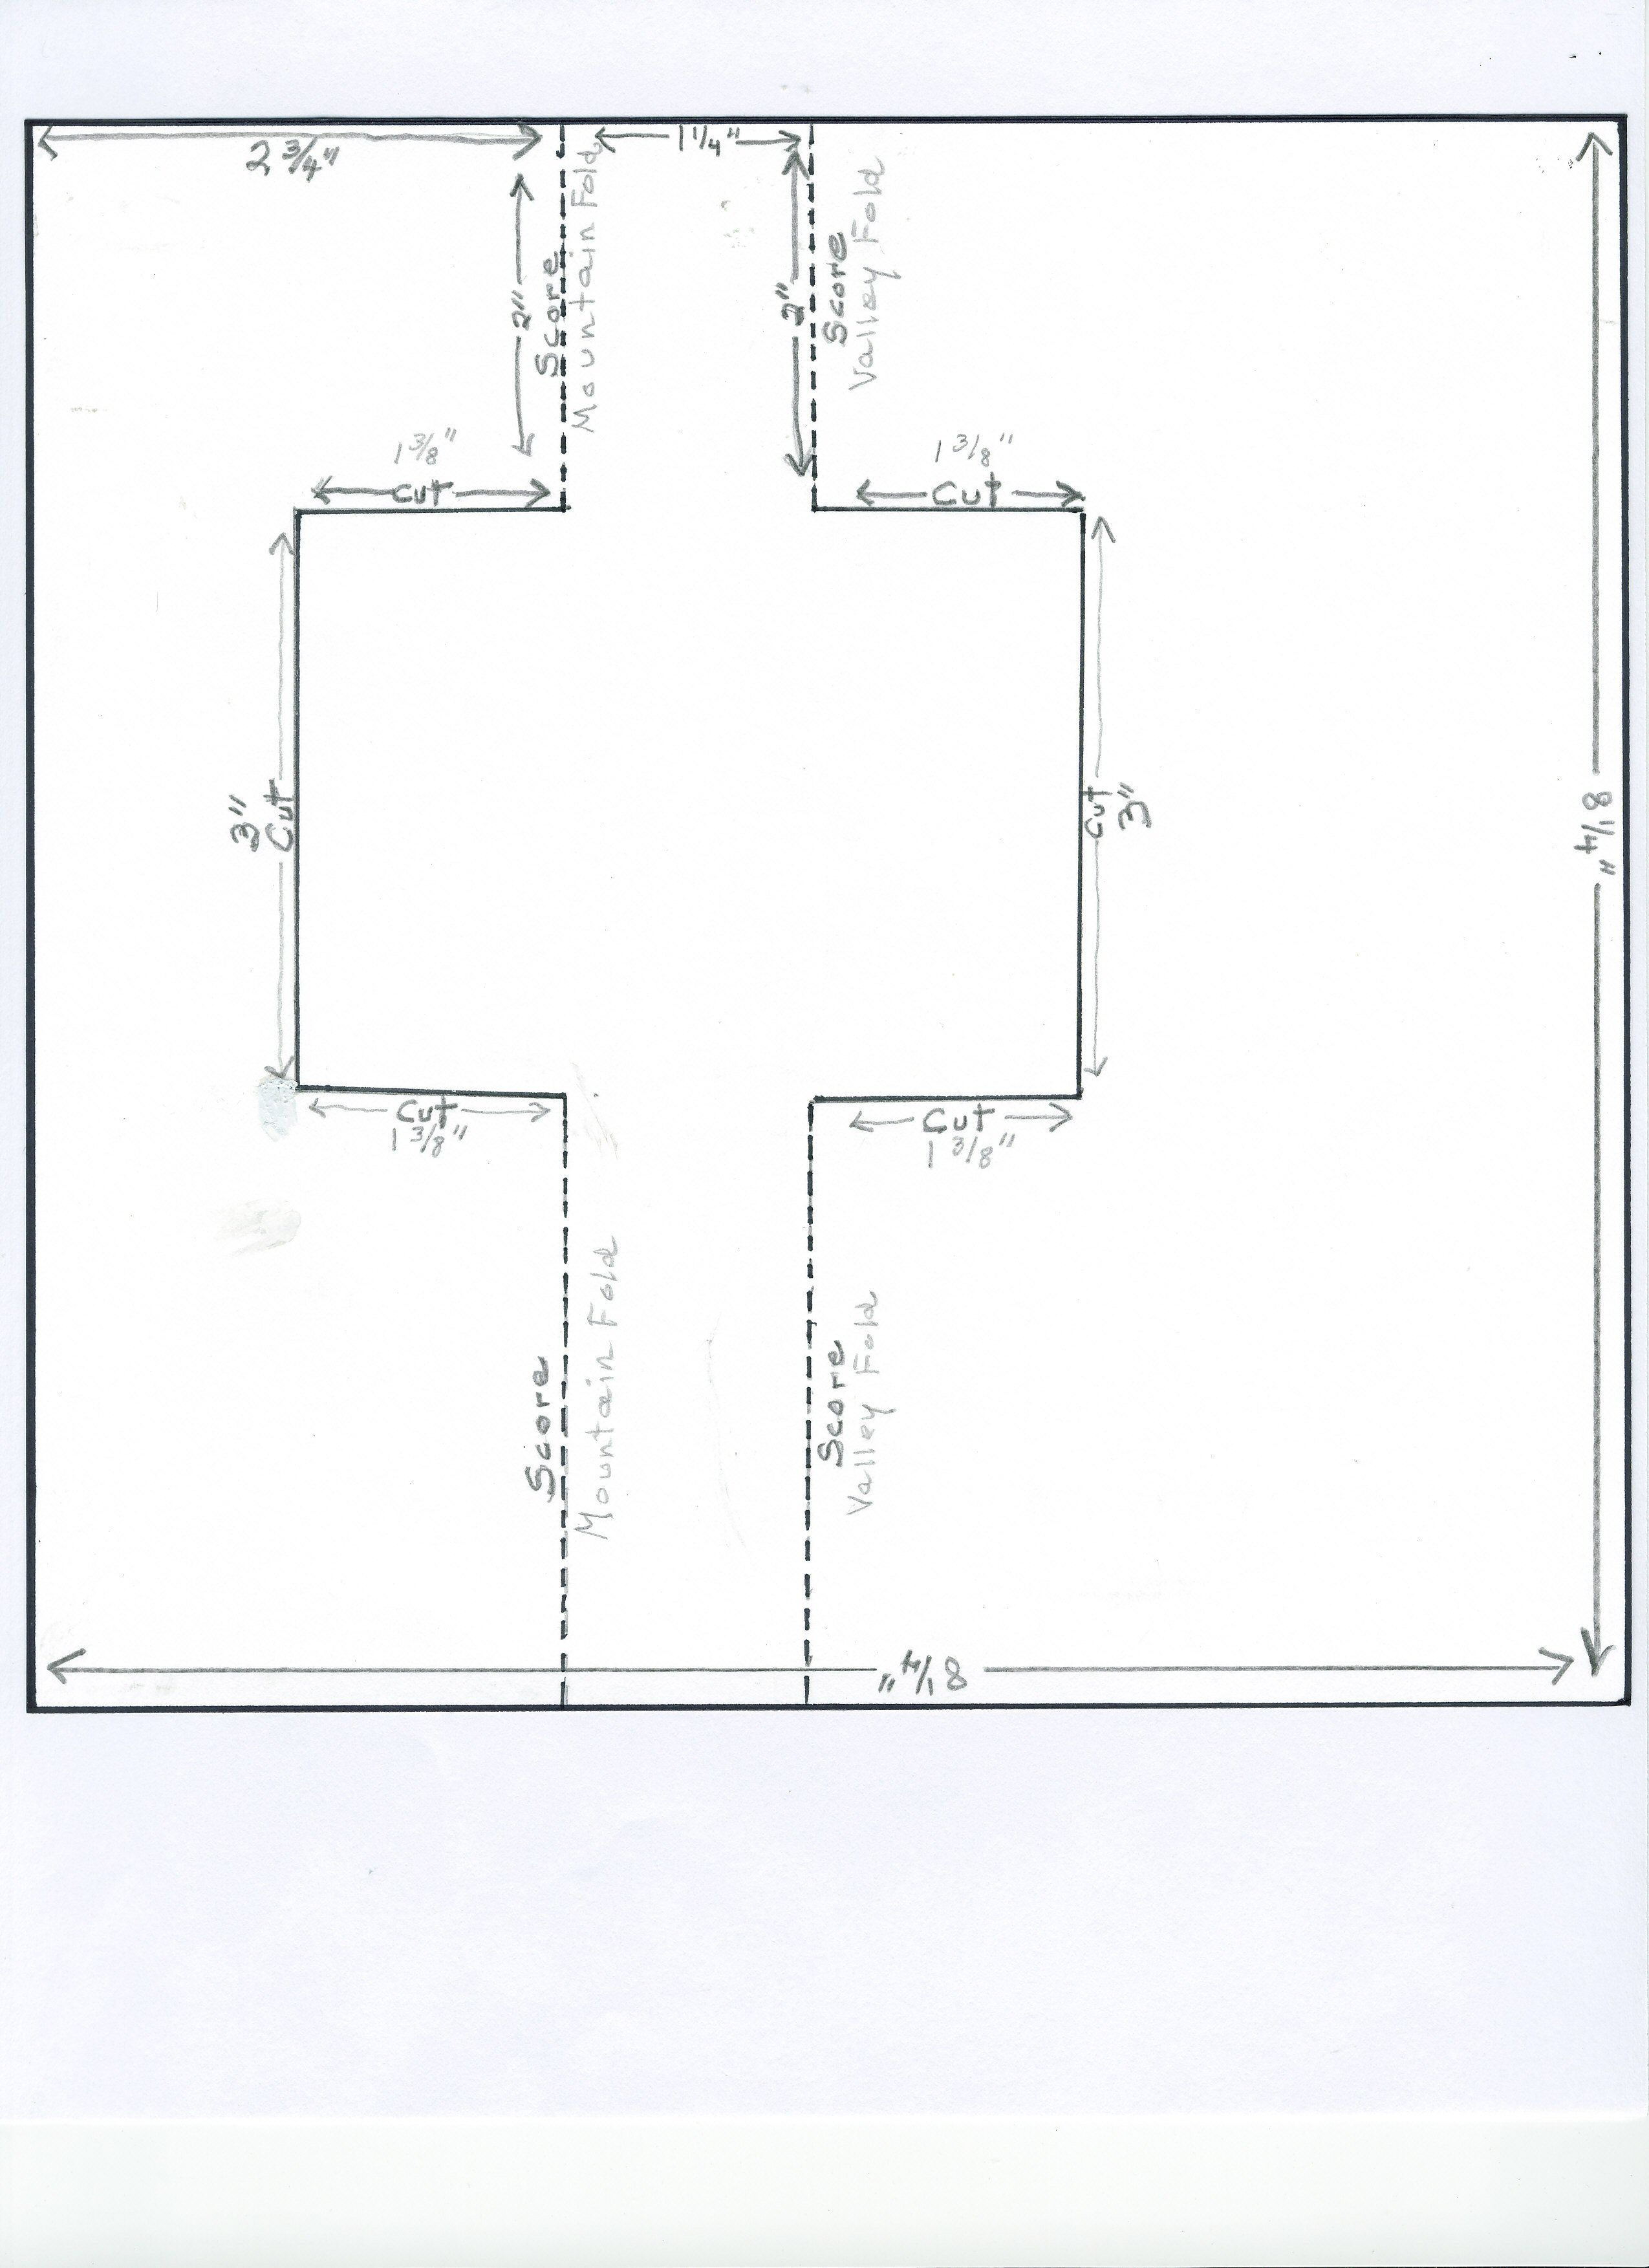 swing card template showing measurements cutting lines and scoring lines the finished card fits in an envelope for an 8 x half fold card